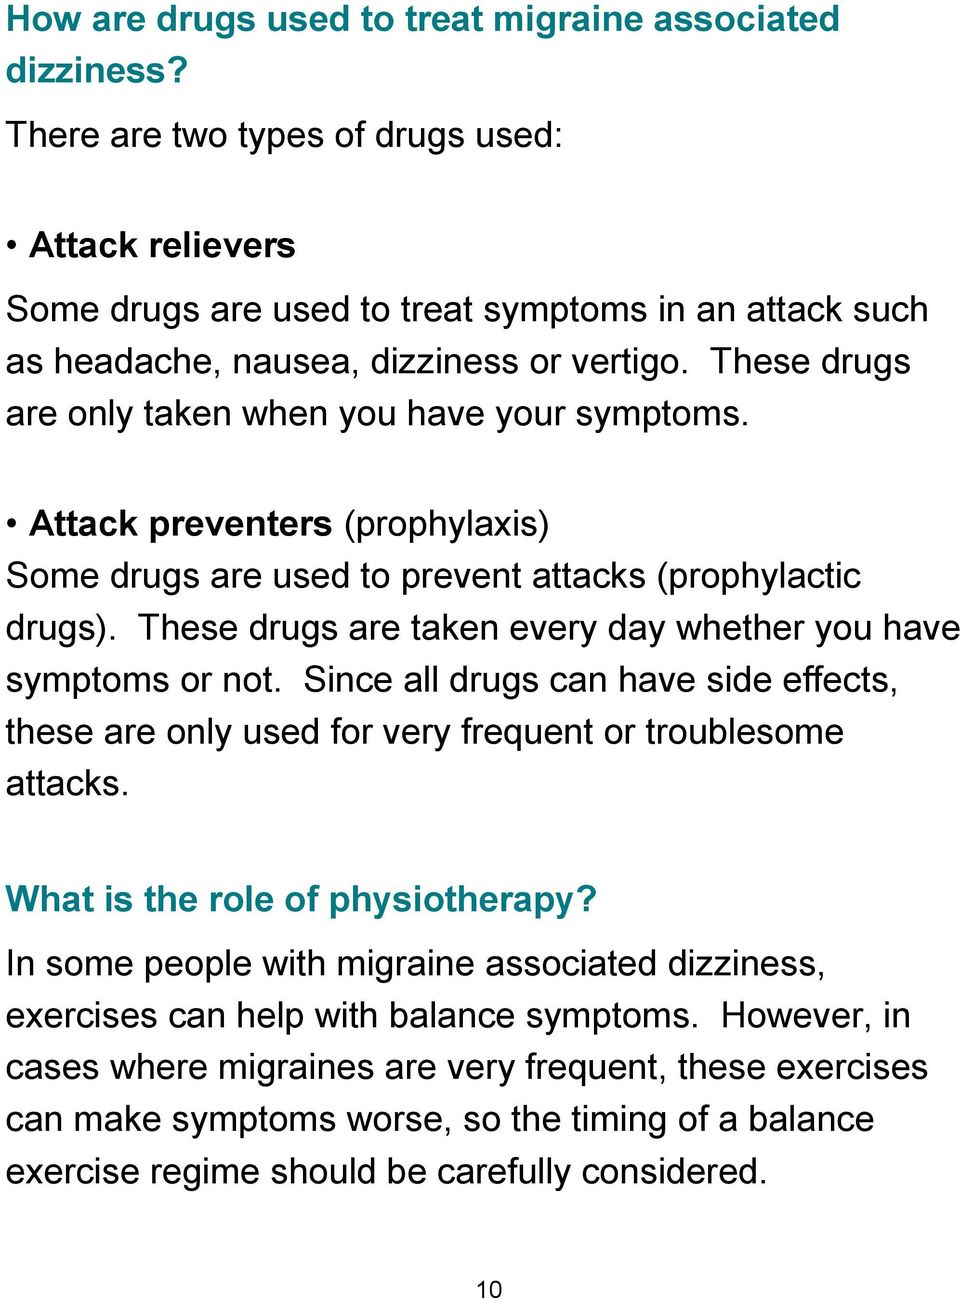 These drugs are only taken when you have your symptoms. Attack preventers (prophylaxis) Some drugs are used to prevent attacks (prophylactic drugs).